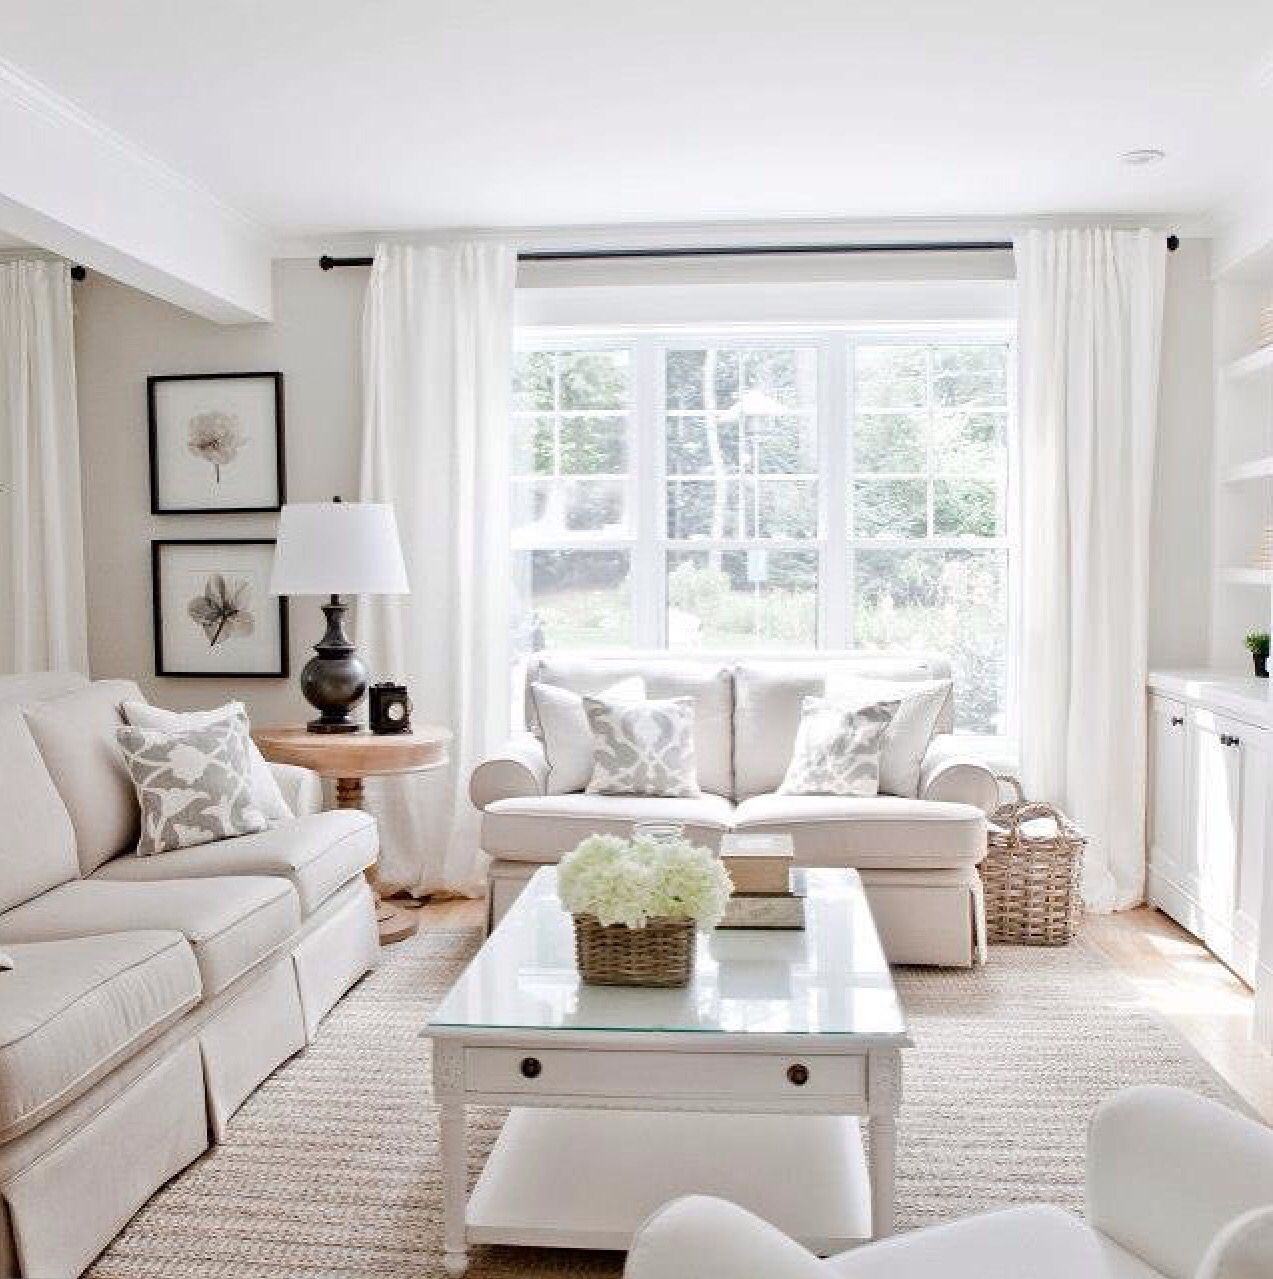 White On White Living Room Transitional Design Modern Furnishings White Interior